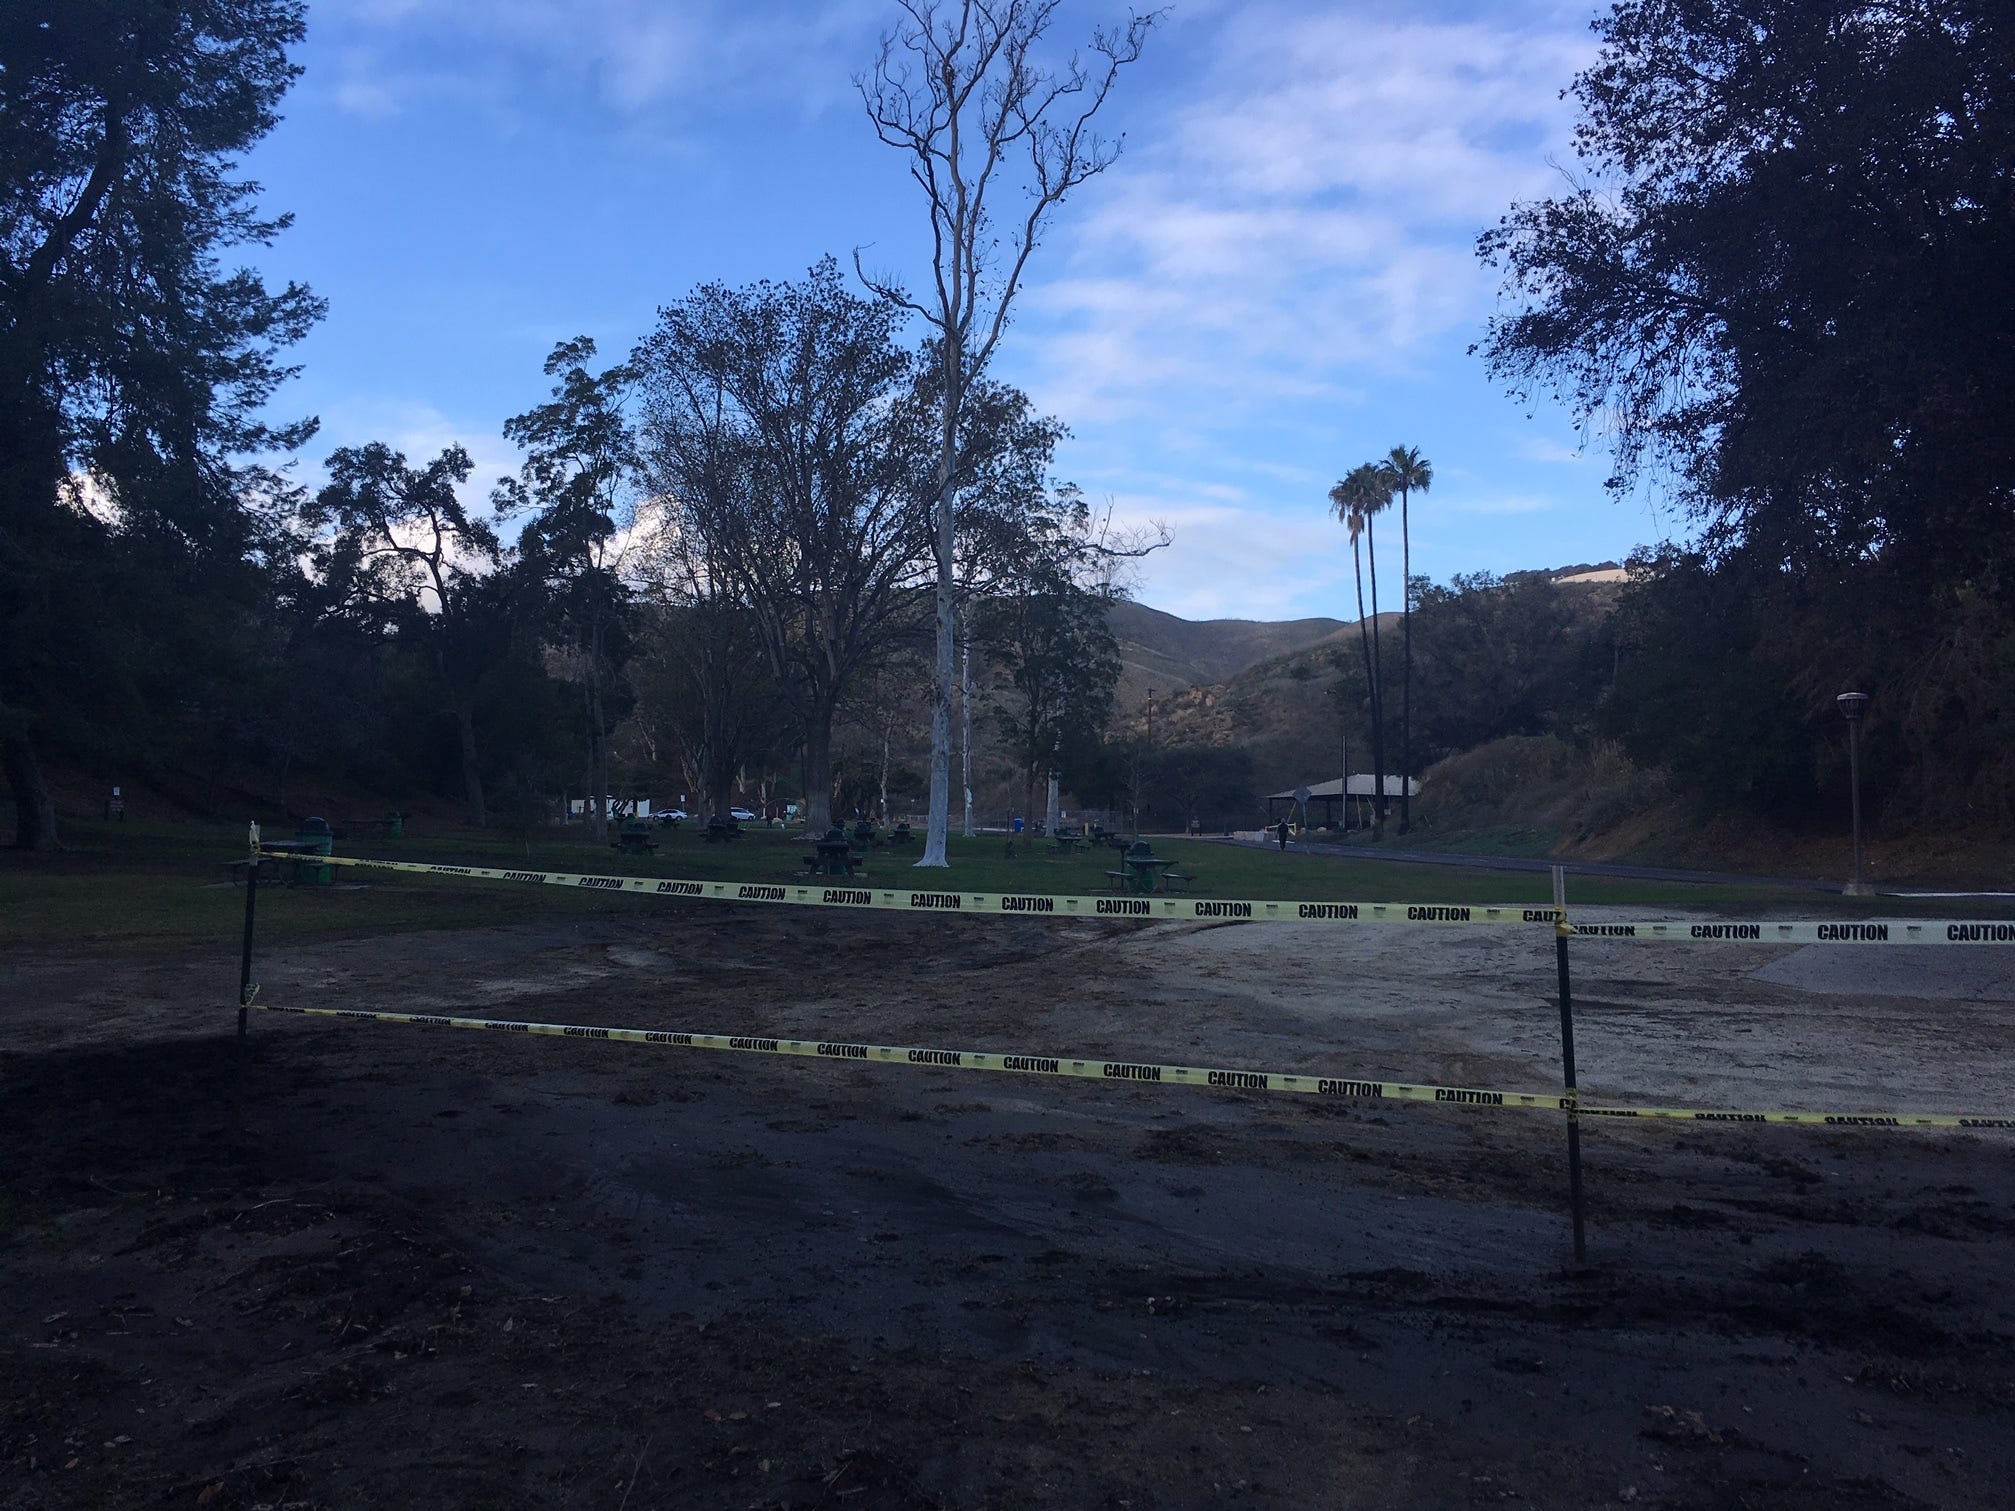 This part of Arroyo Verde Park in Ventura used to have a playground. The city wants community input to help design what will be built in its place.